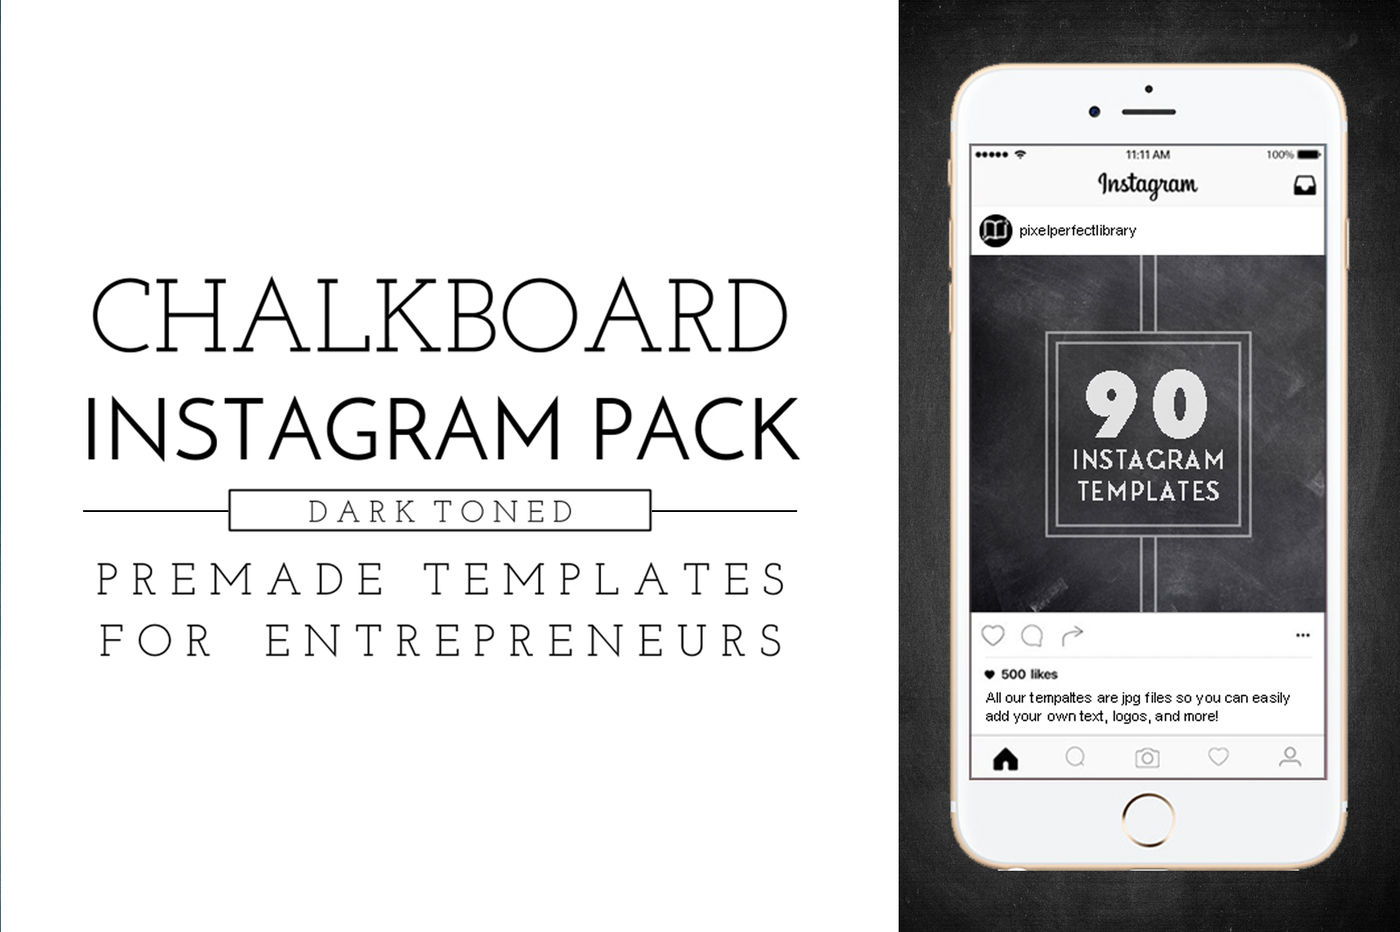 Dark Chalkboard Instagram Pack By Pixel Perfect Library